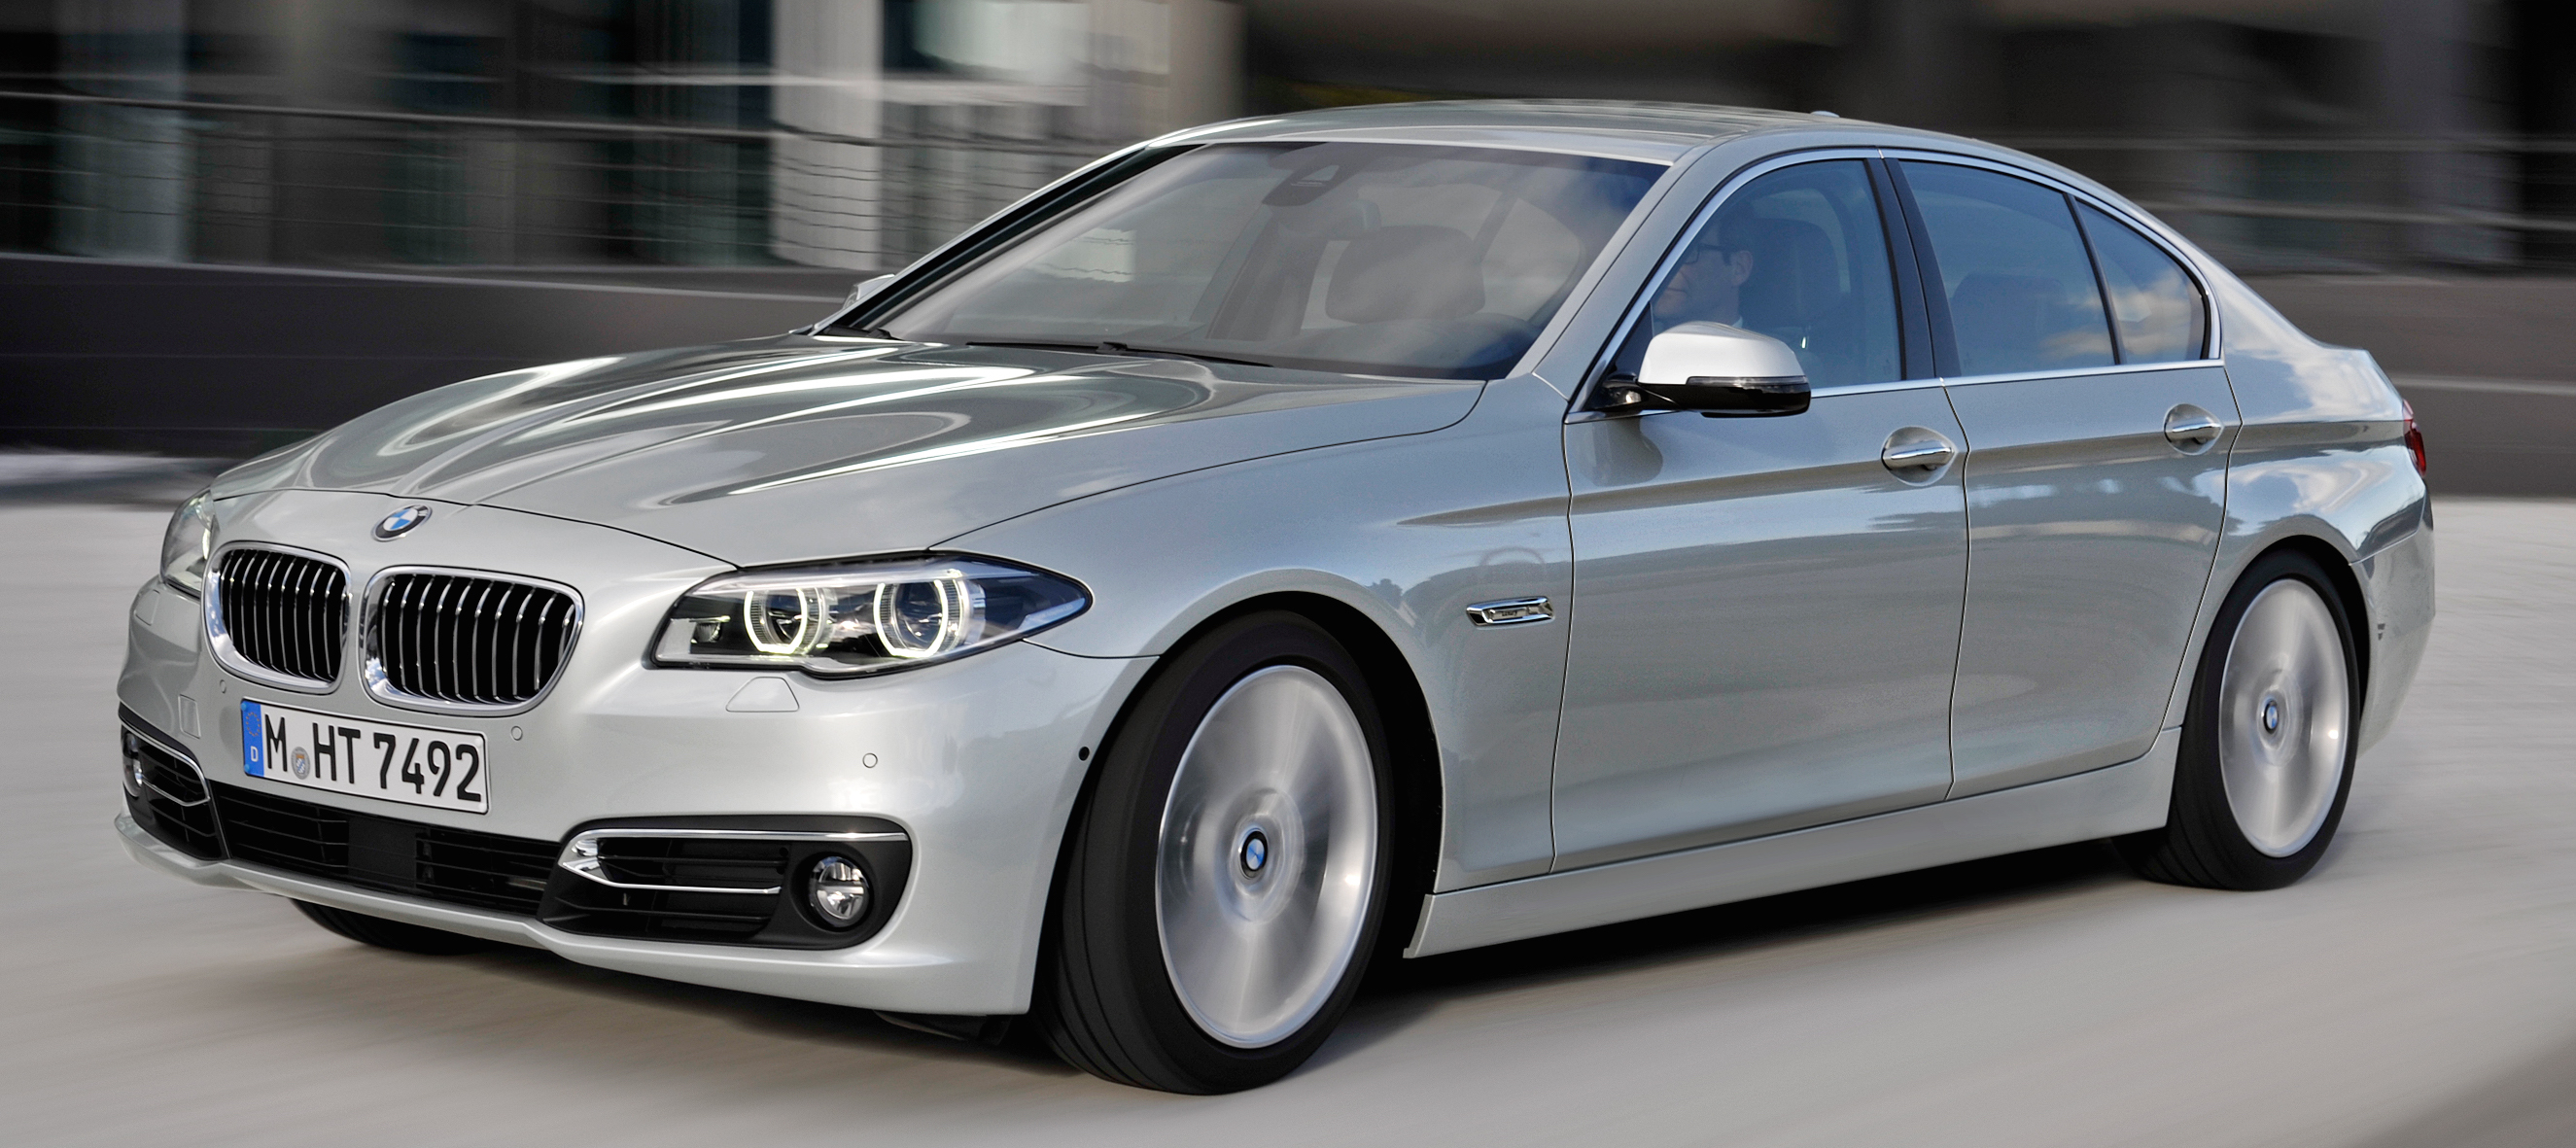 Bmw I Series >> F10 BMW 5 Series sales exceed two million mark Paul Tan - Image 476237